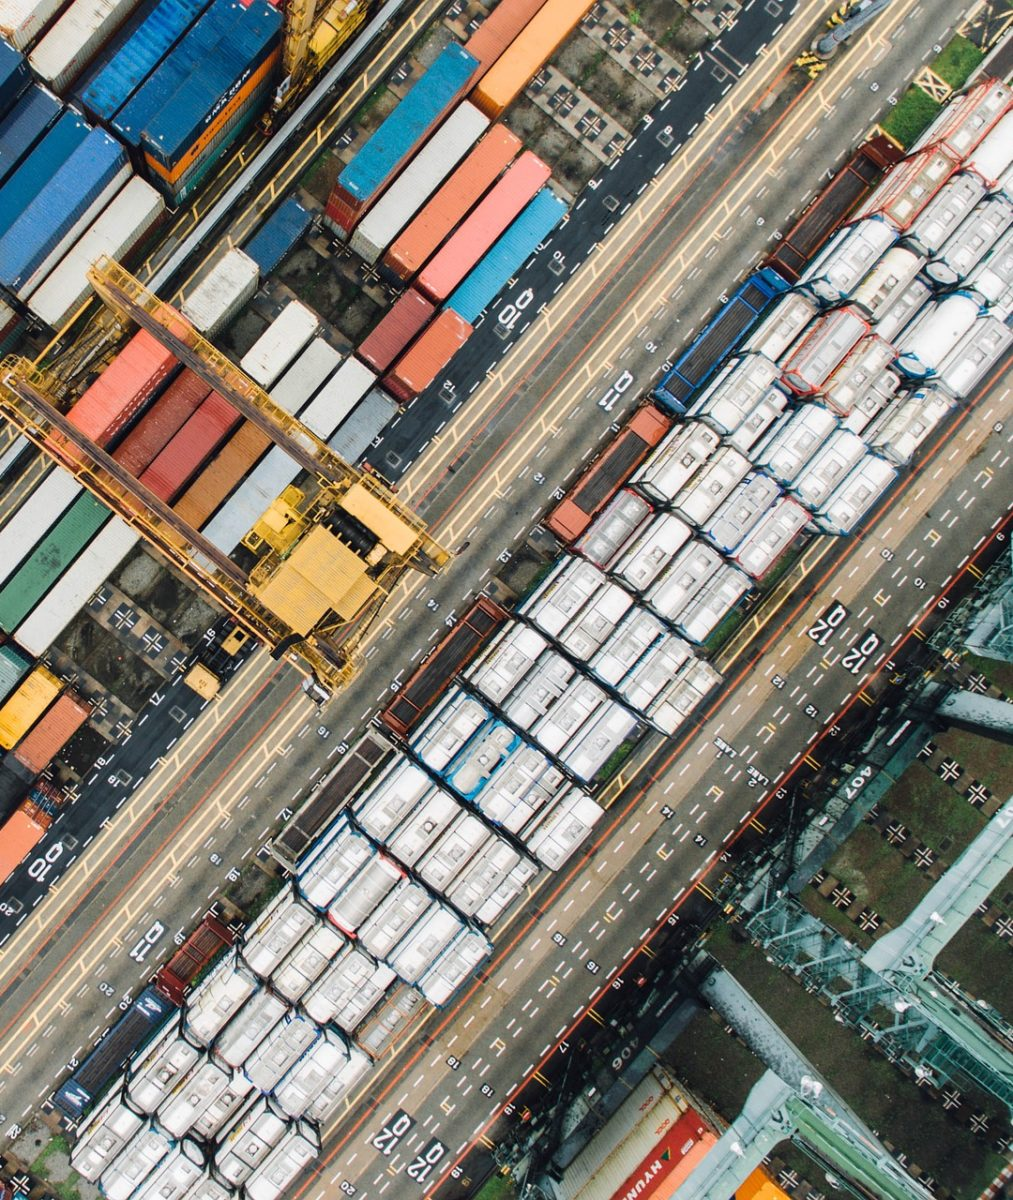 aerial view of a shipping container yard